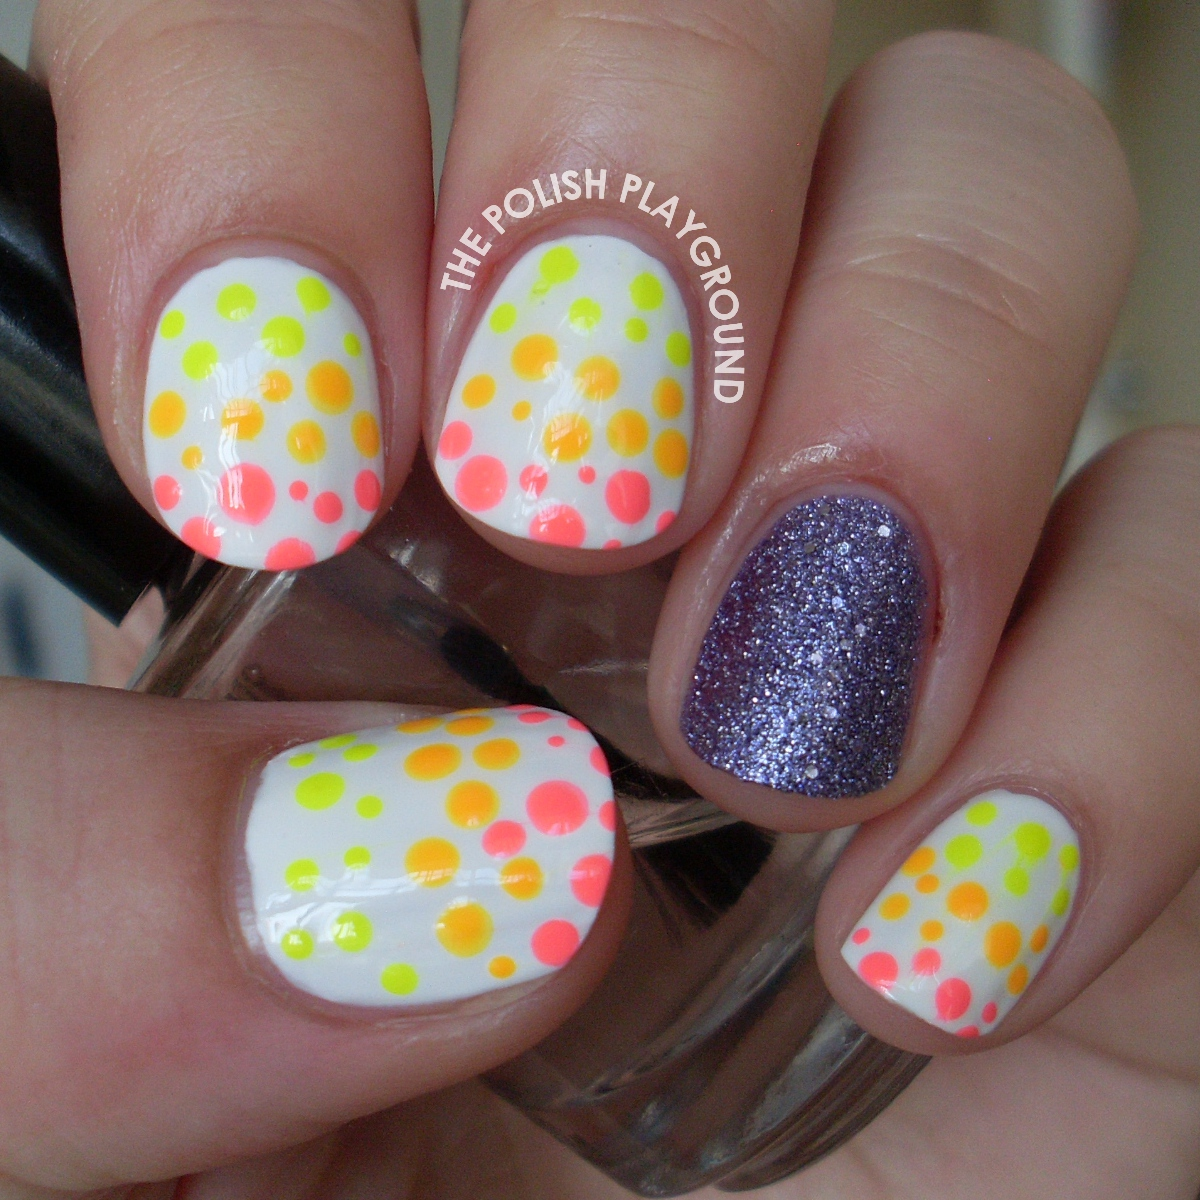 Neon Nail Art: The Polish Playground: Neon Spotted Nail Art With Texture